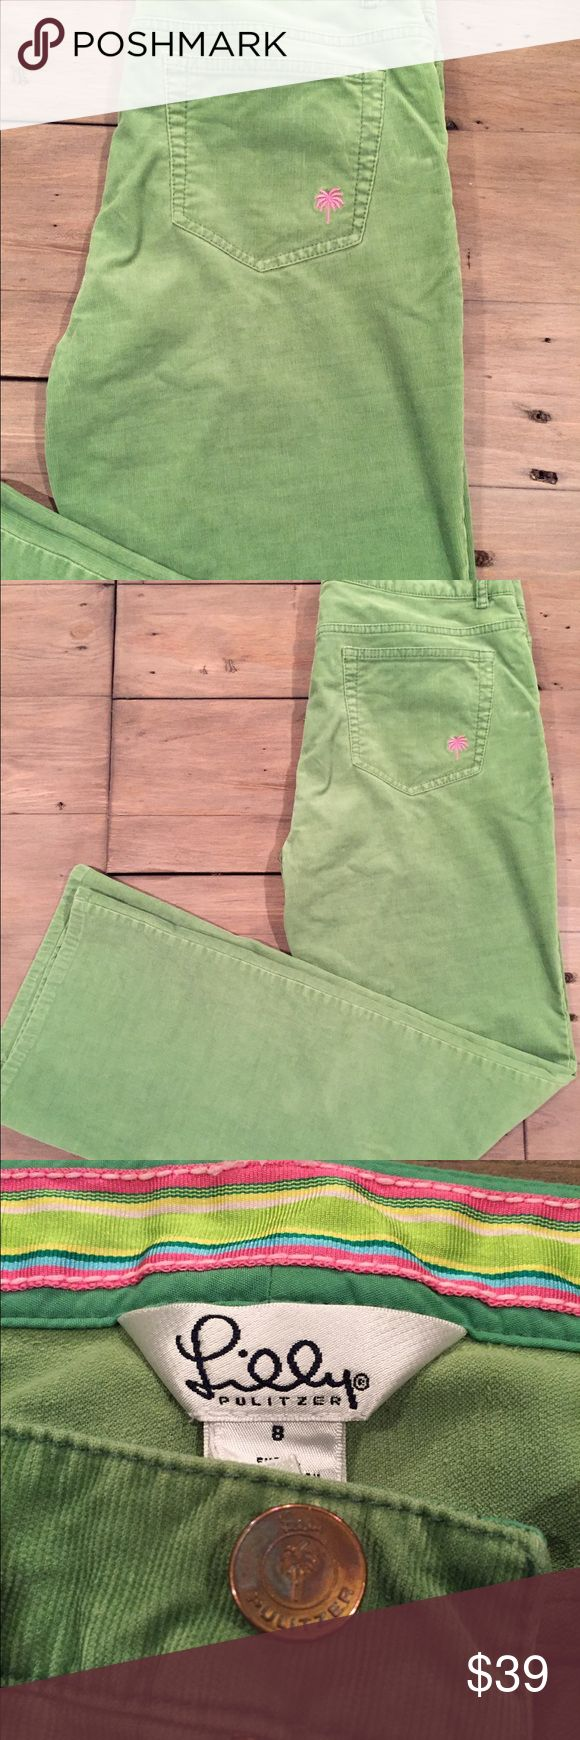 Lilly Pulitzer green cord pants size 8 Lilly Pulitzer green cord pant. Size 8 Please Note that all items pictured with pants are sold separately Lilly Pulitzer Pants Wide Leg